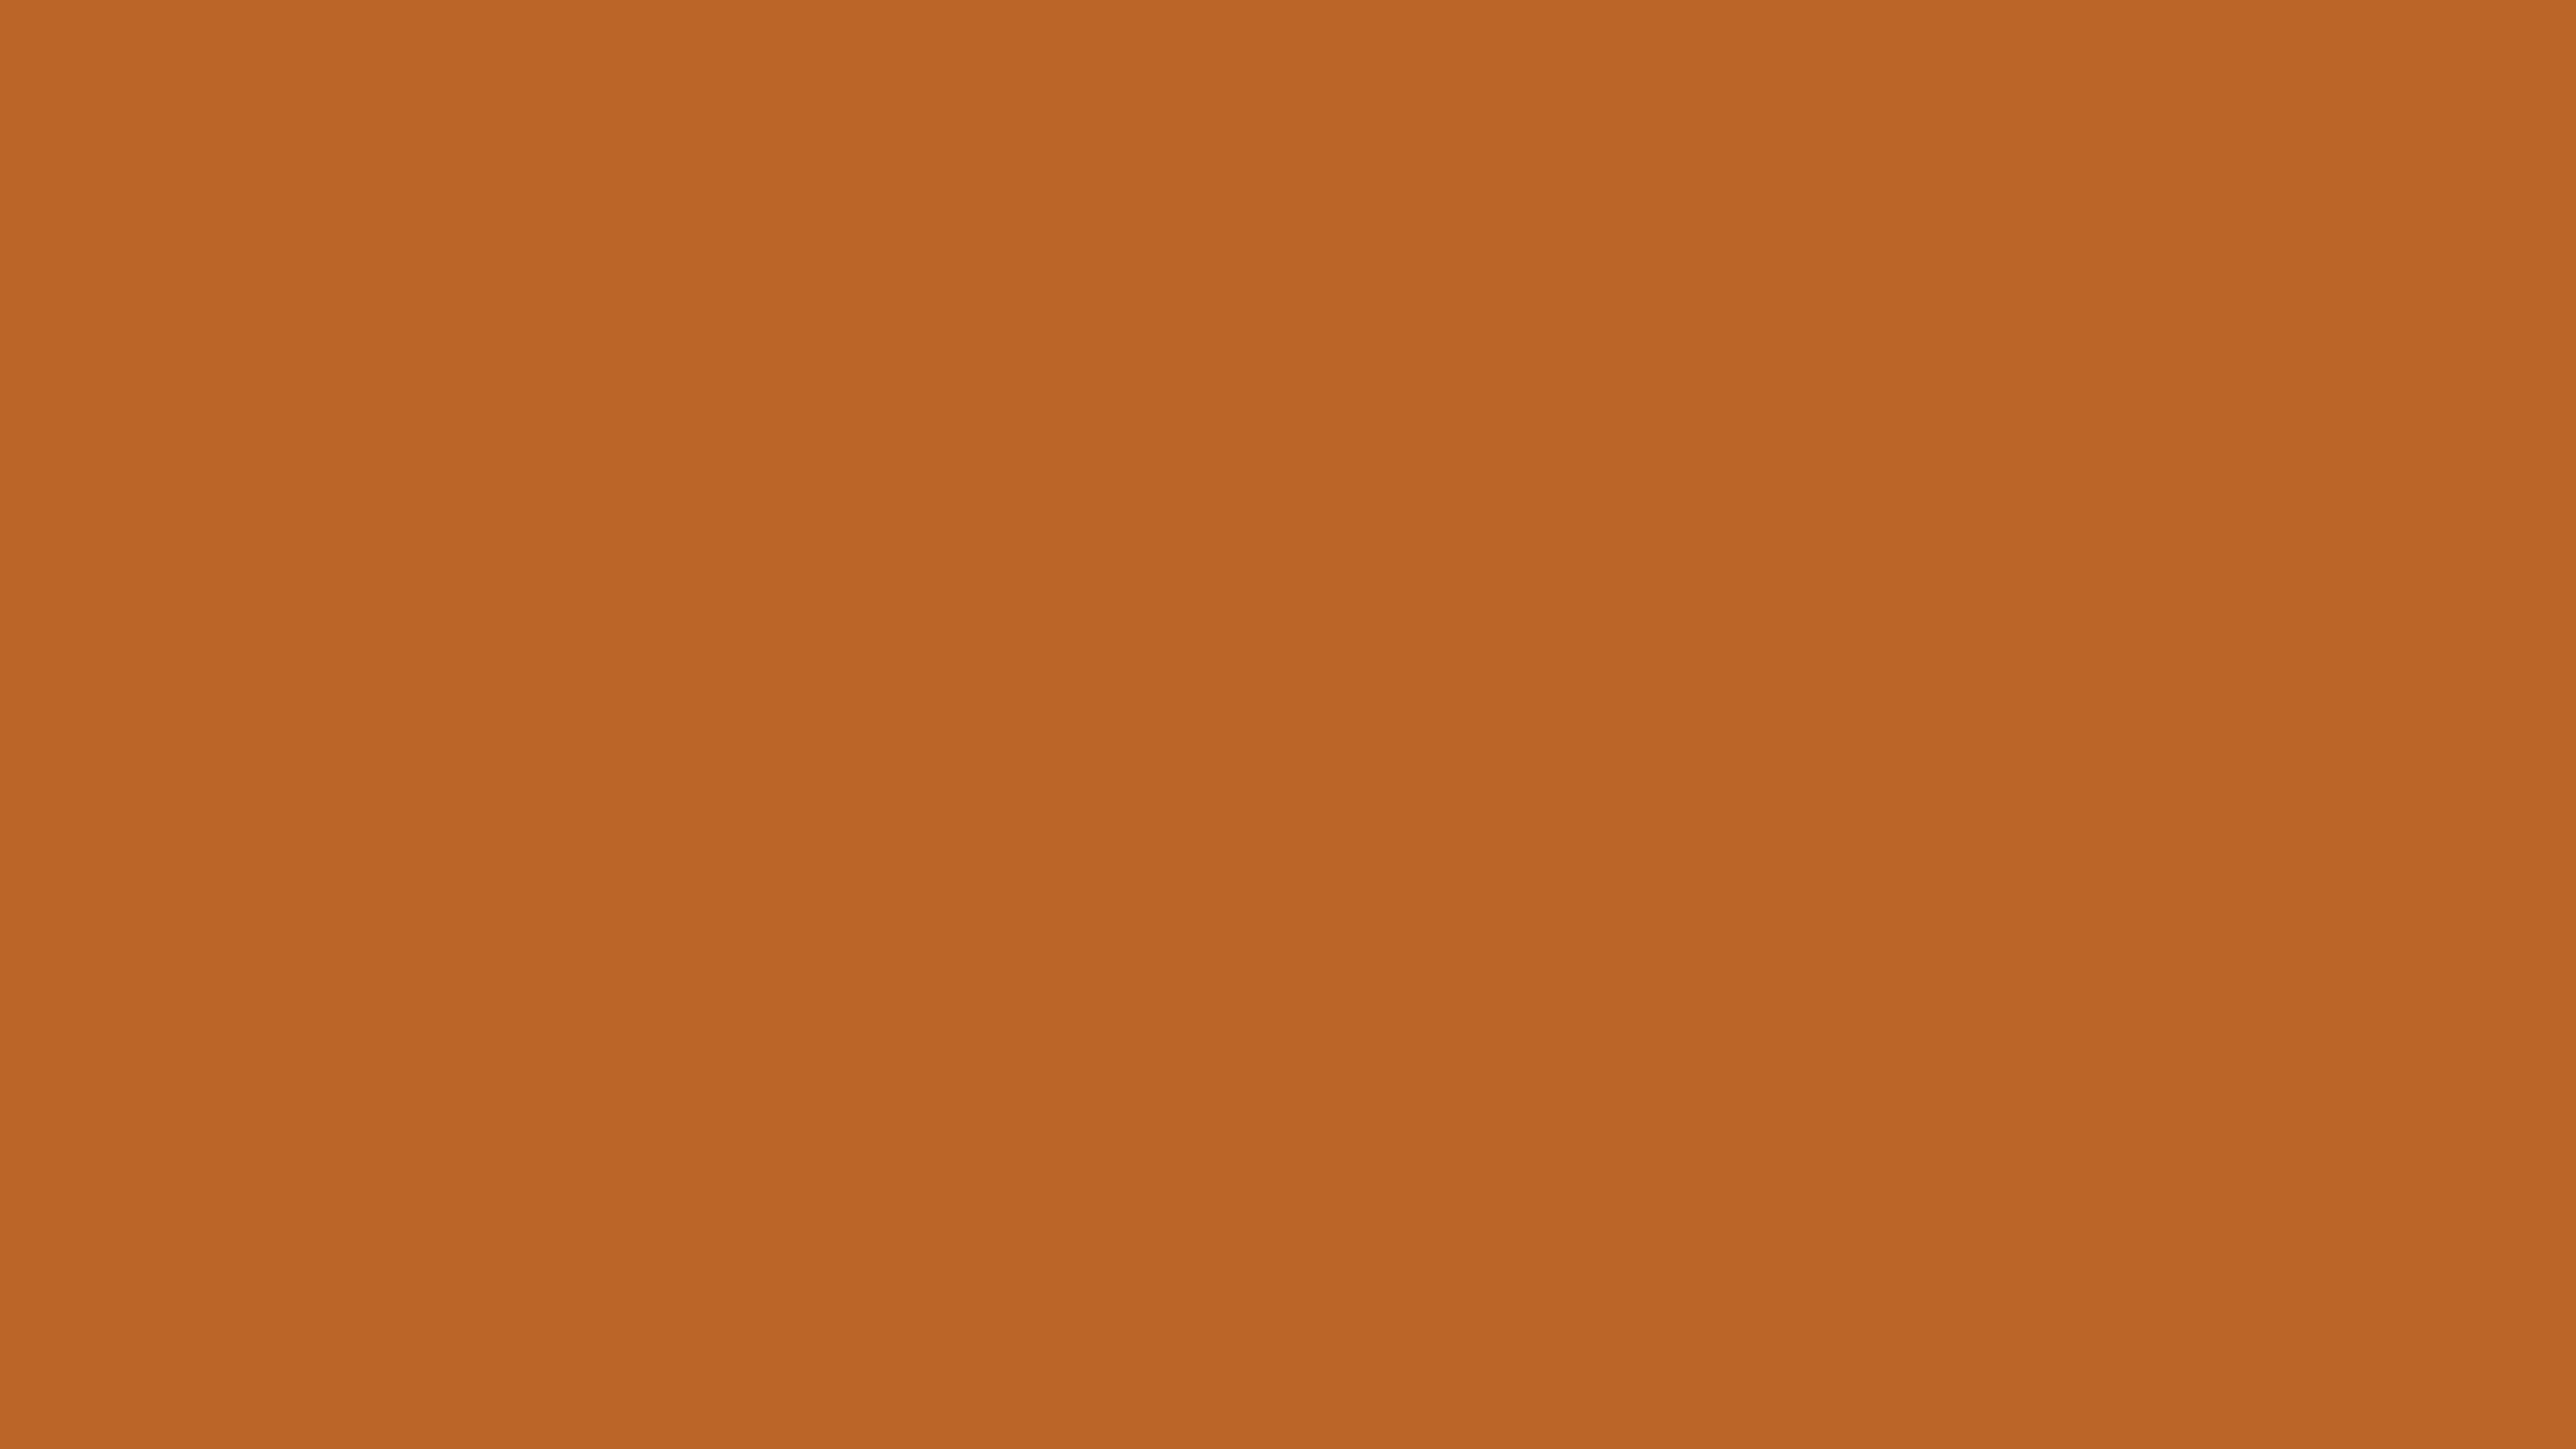 5120x2880 Ruddy Brown Solid Color Background